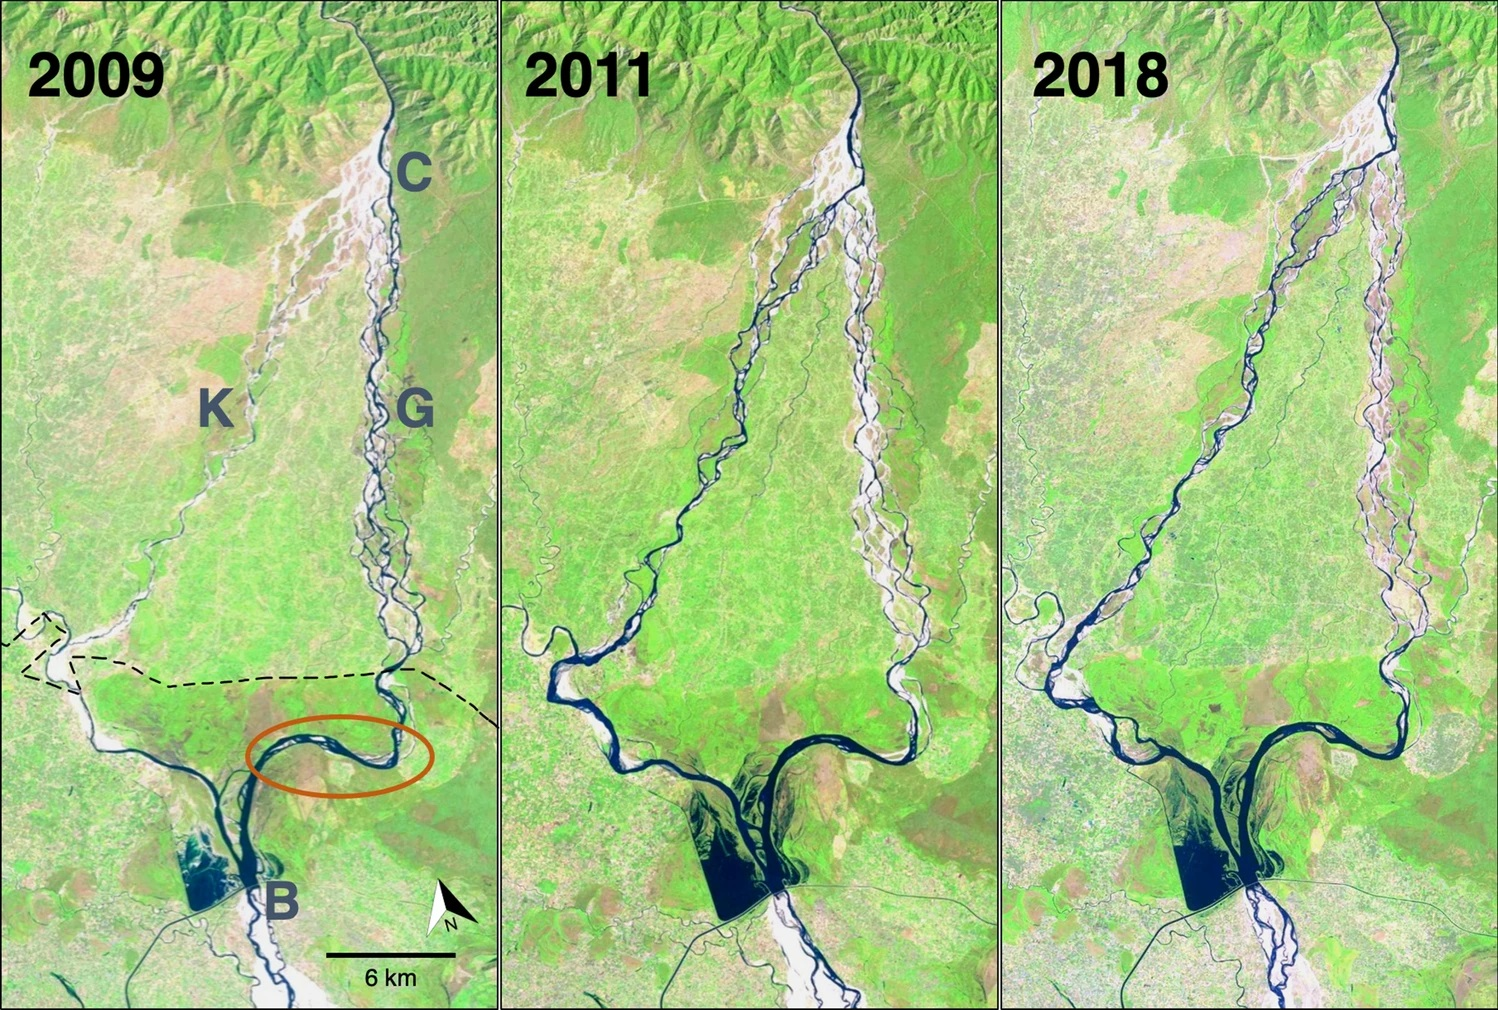 Satellite images before (2009; left panel) and after (2011 and 2018; middle and right panels) a flood event in 2010 in Karnali river channels, Nepal. The flood resulted in a mainstream channel shift from east (right side, = G, Geruwa channel in Nepal) to west (left side, = K, Karnali channel in Nepal). Map from Vashistha et al. 2021.